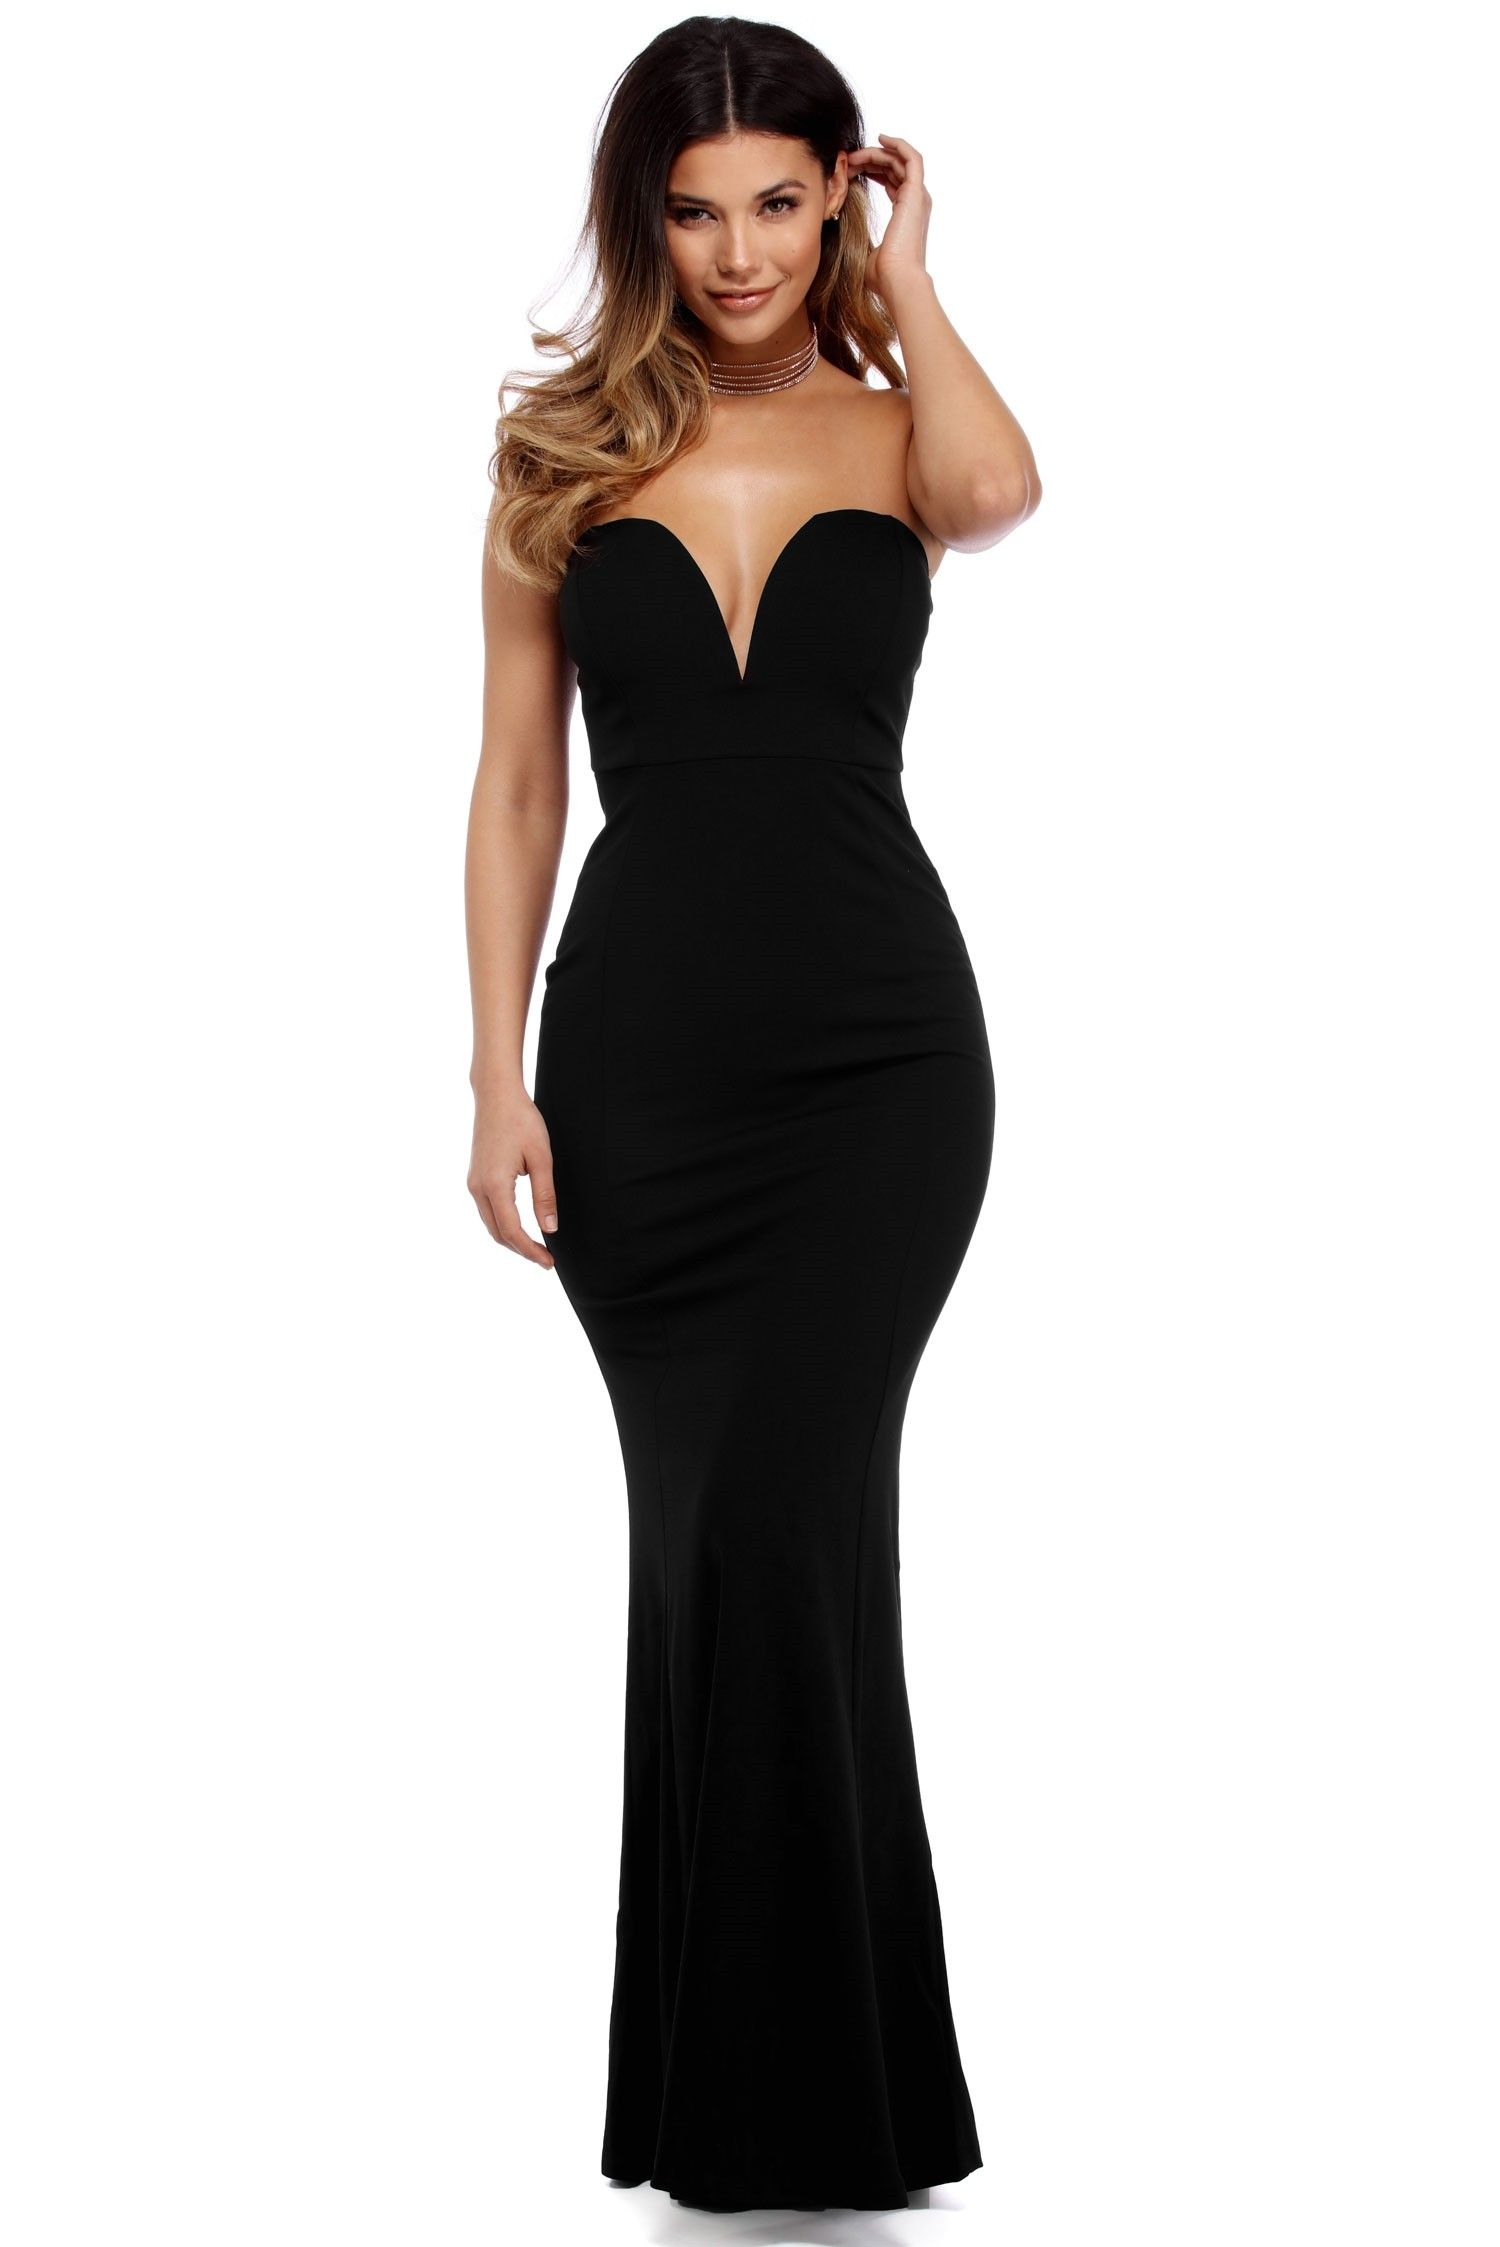 Sophia Black Formal Dress